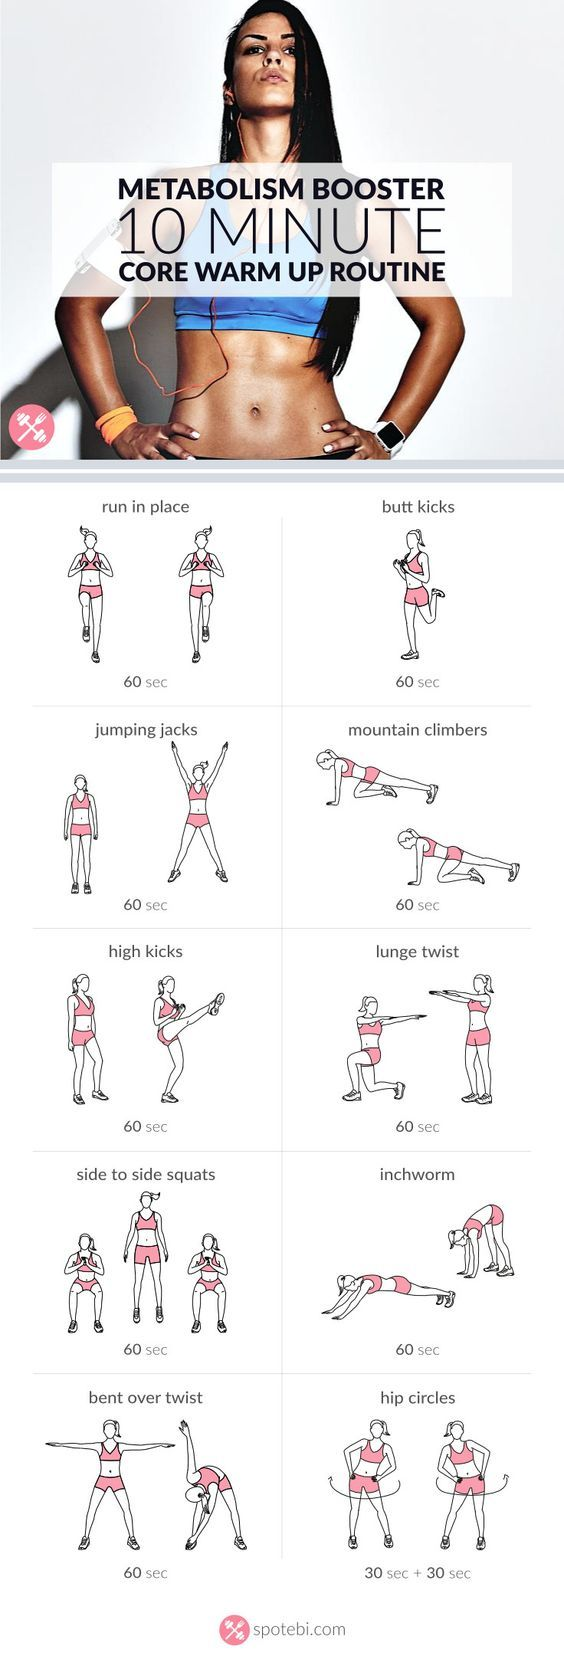 Warm up your abs and lower back with this bodyweight at home core warm up routine. Get your heart pumping and prepare your core for a strengthening workout. http://www.spotebi.com/workout-routines/bodyweight-at-home-core-warm-up-routine/: